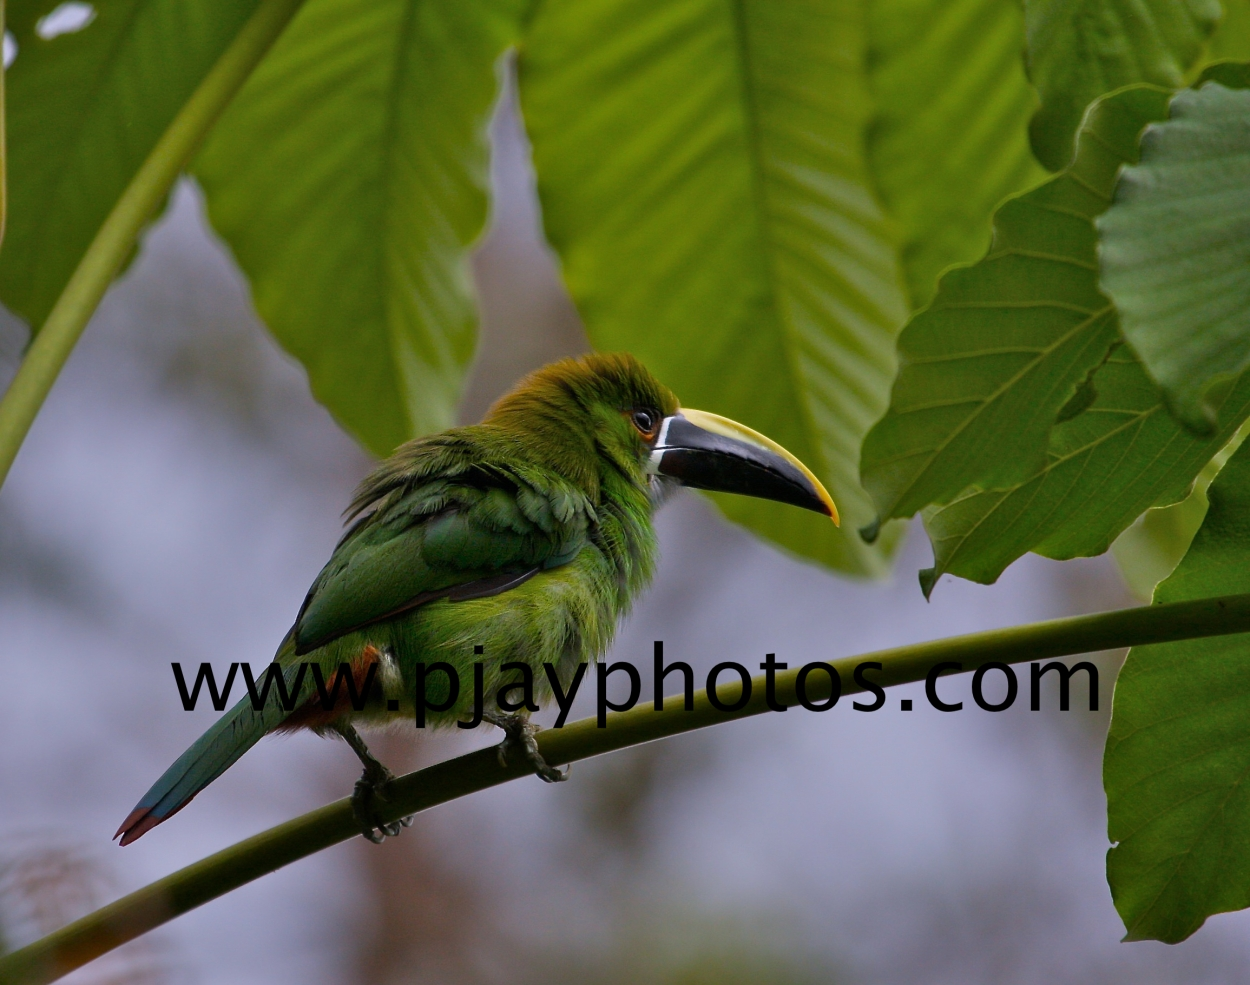 andean toucanet, toucanet, toucan, bird, colombia, nature, wildlife, photograph